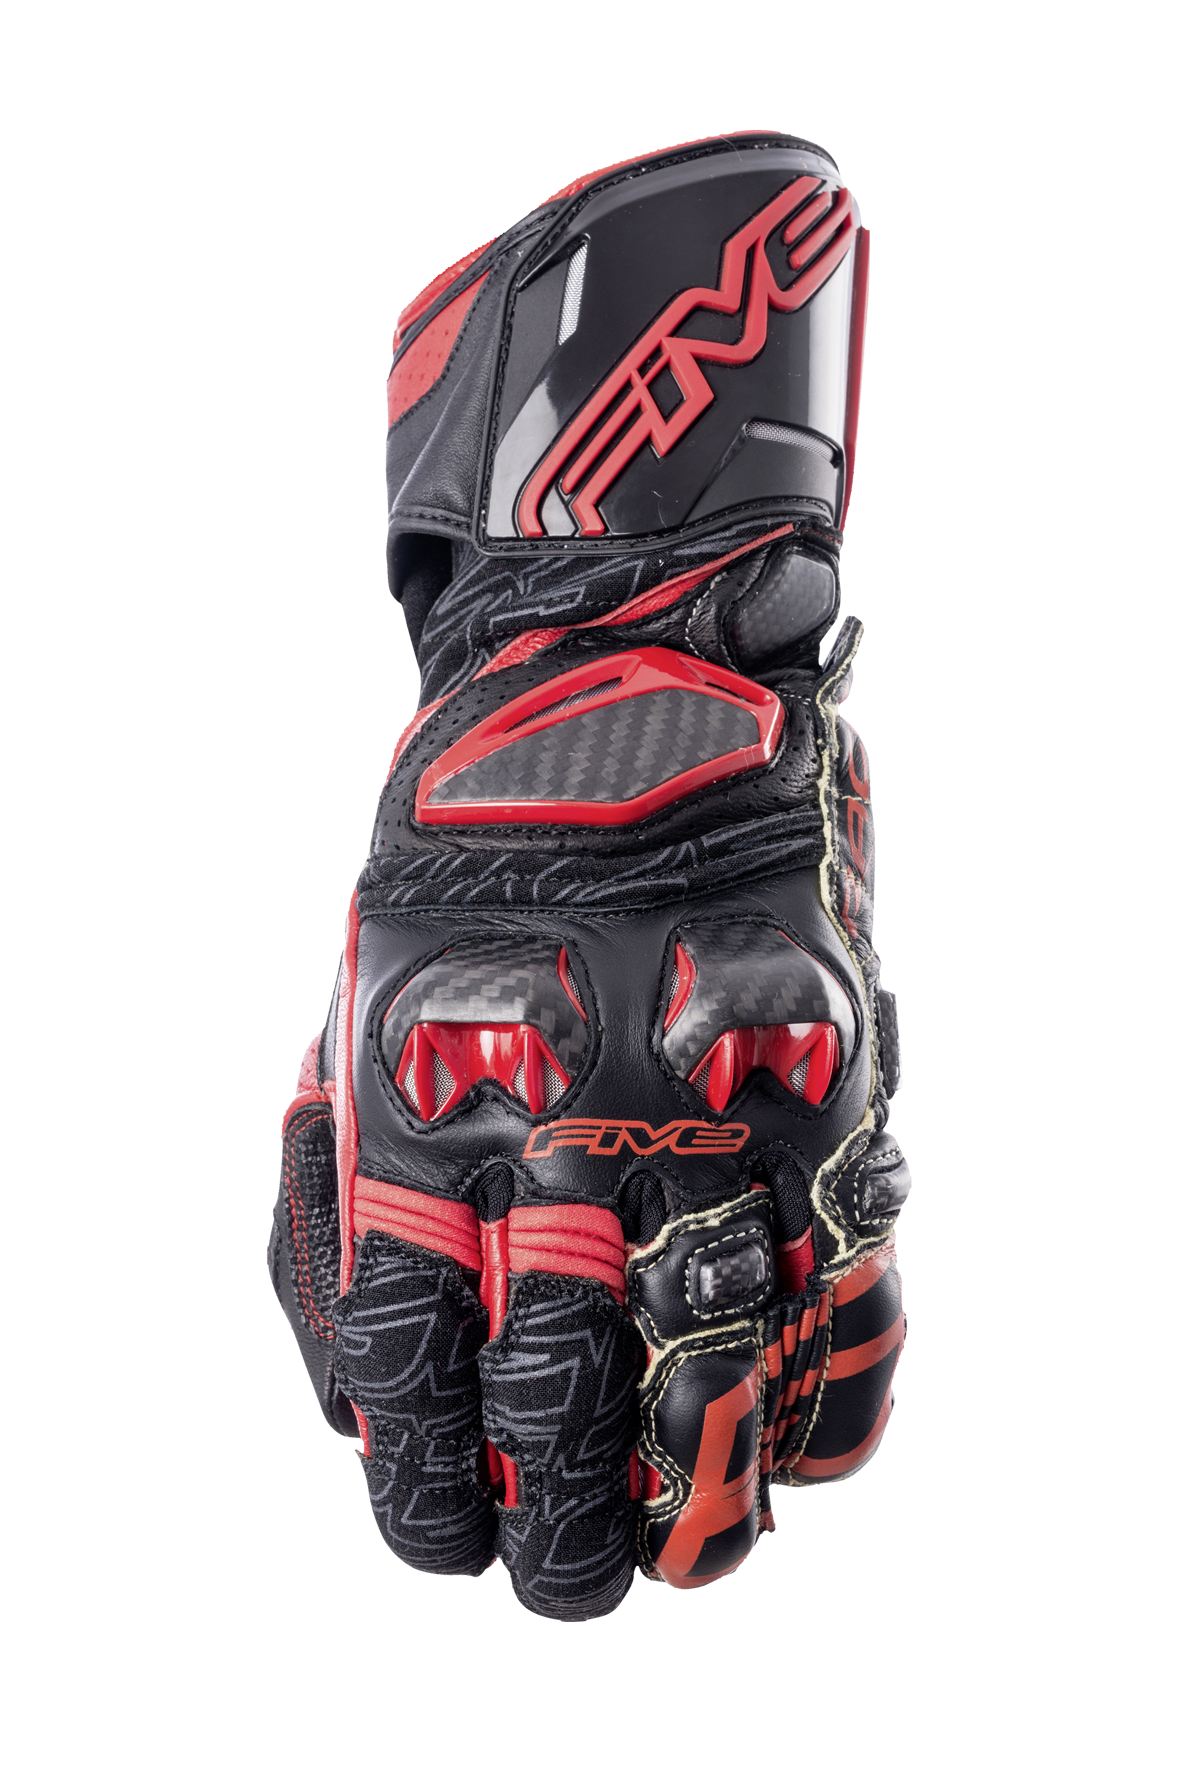 FIVE RFX RACE, Black / Red